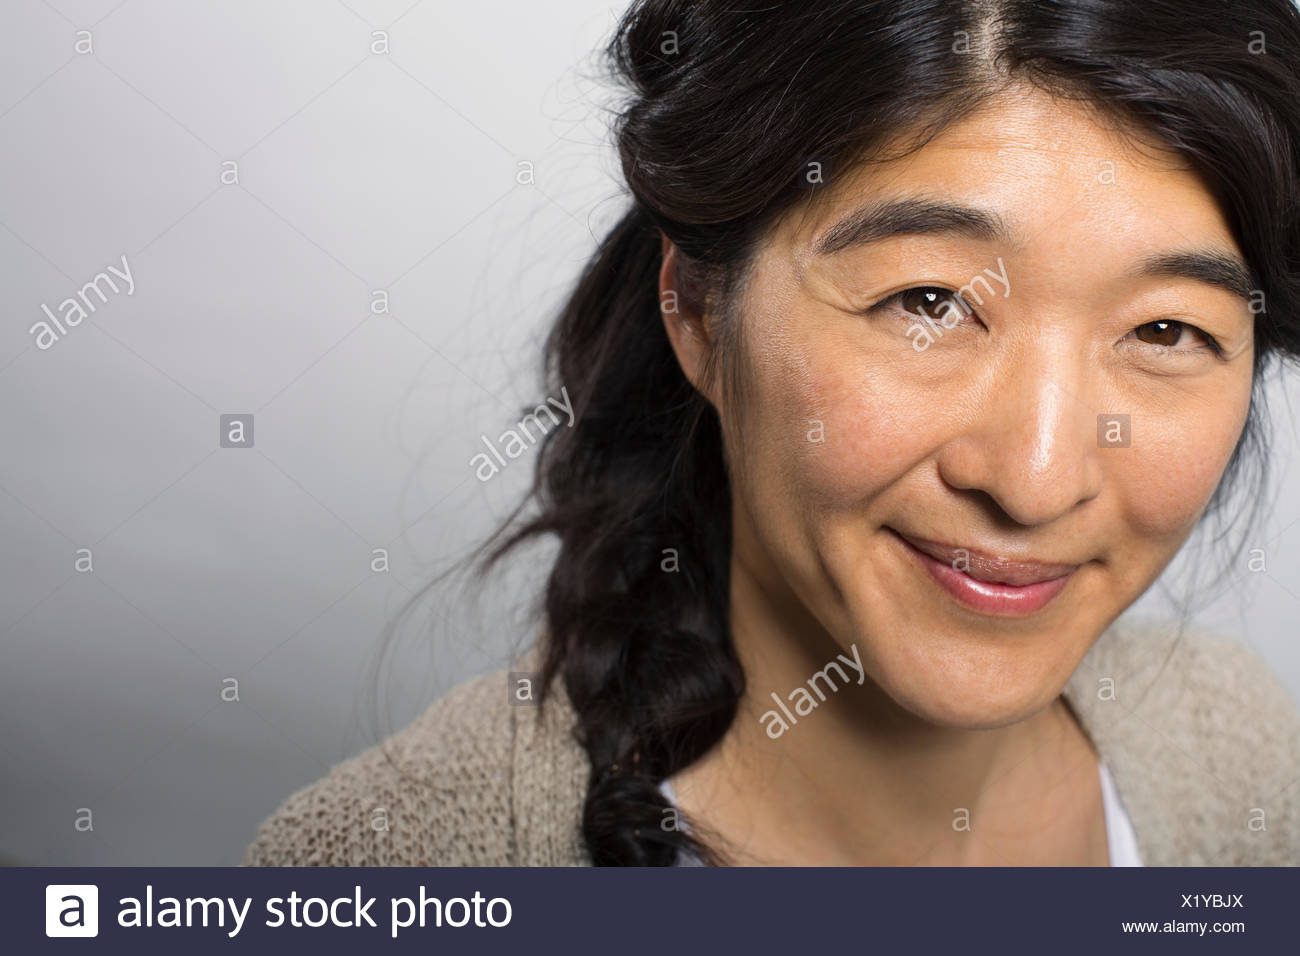 Close up of smiling woman with braided hair Photo Stock